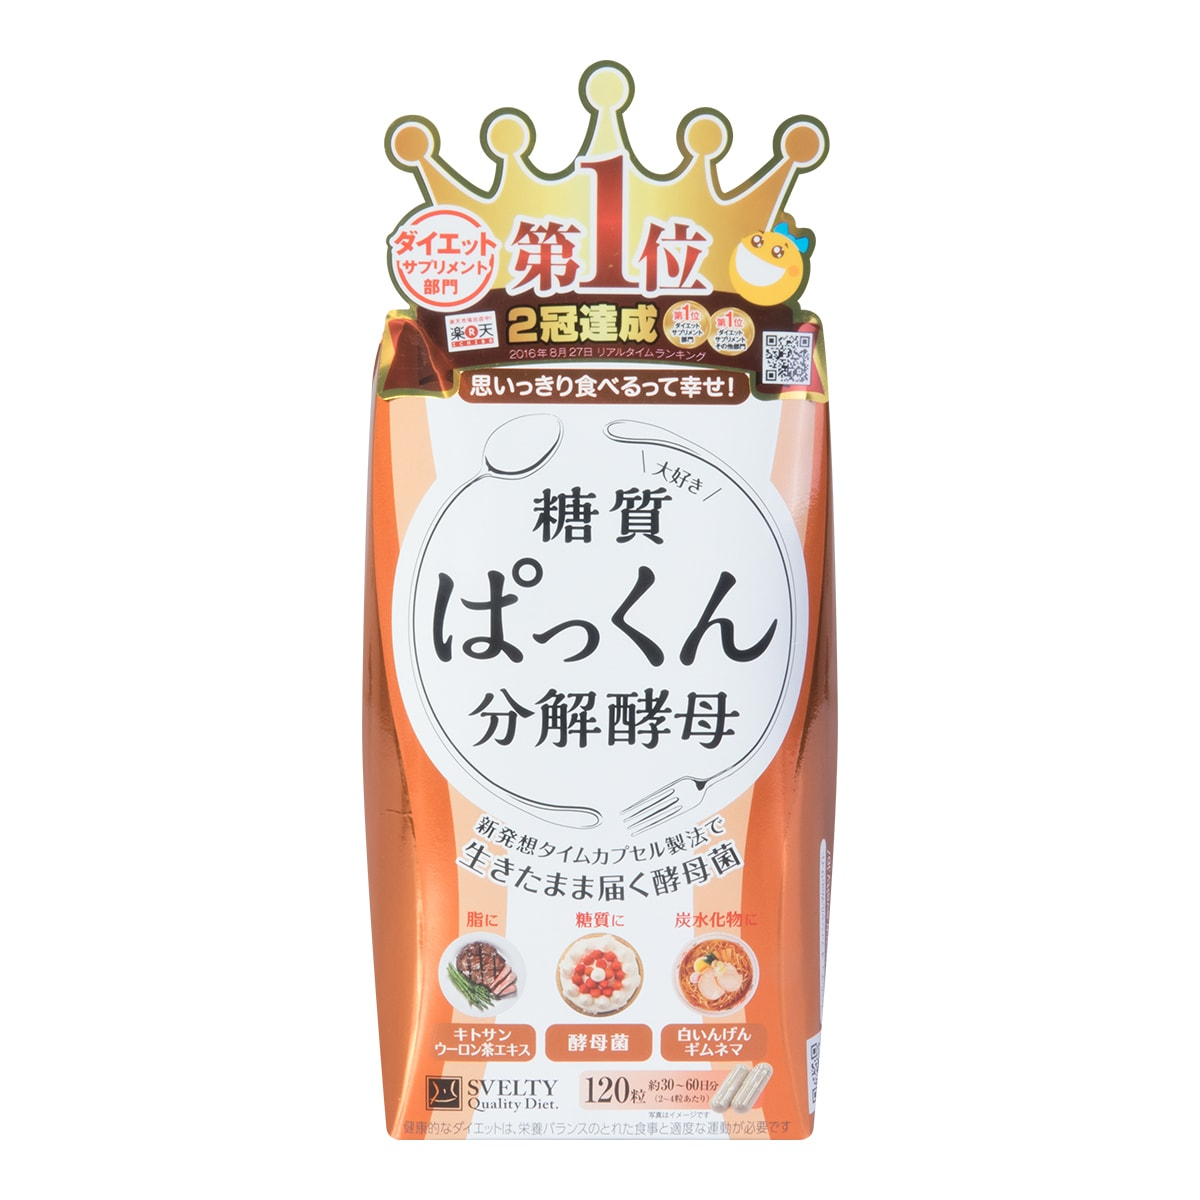 Yamibuy.com:Customer reviews:SVELTY Quality Diet Pakkun Yeast With Probiotics Value Pack 120 Capsules Bingbing Fan Recommended